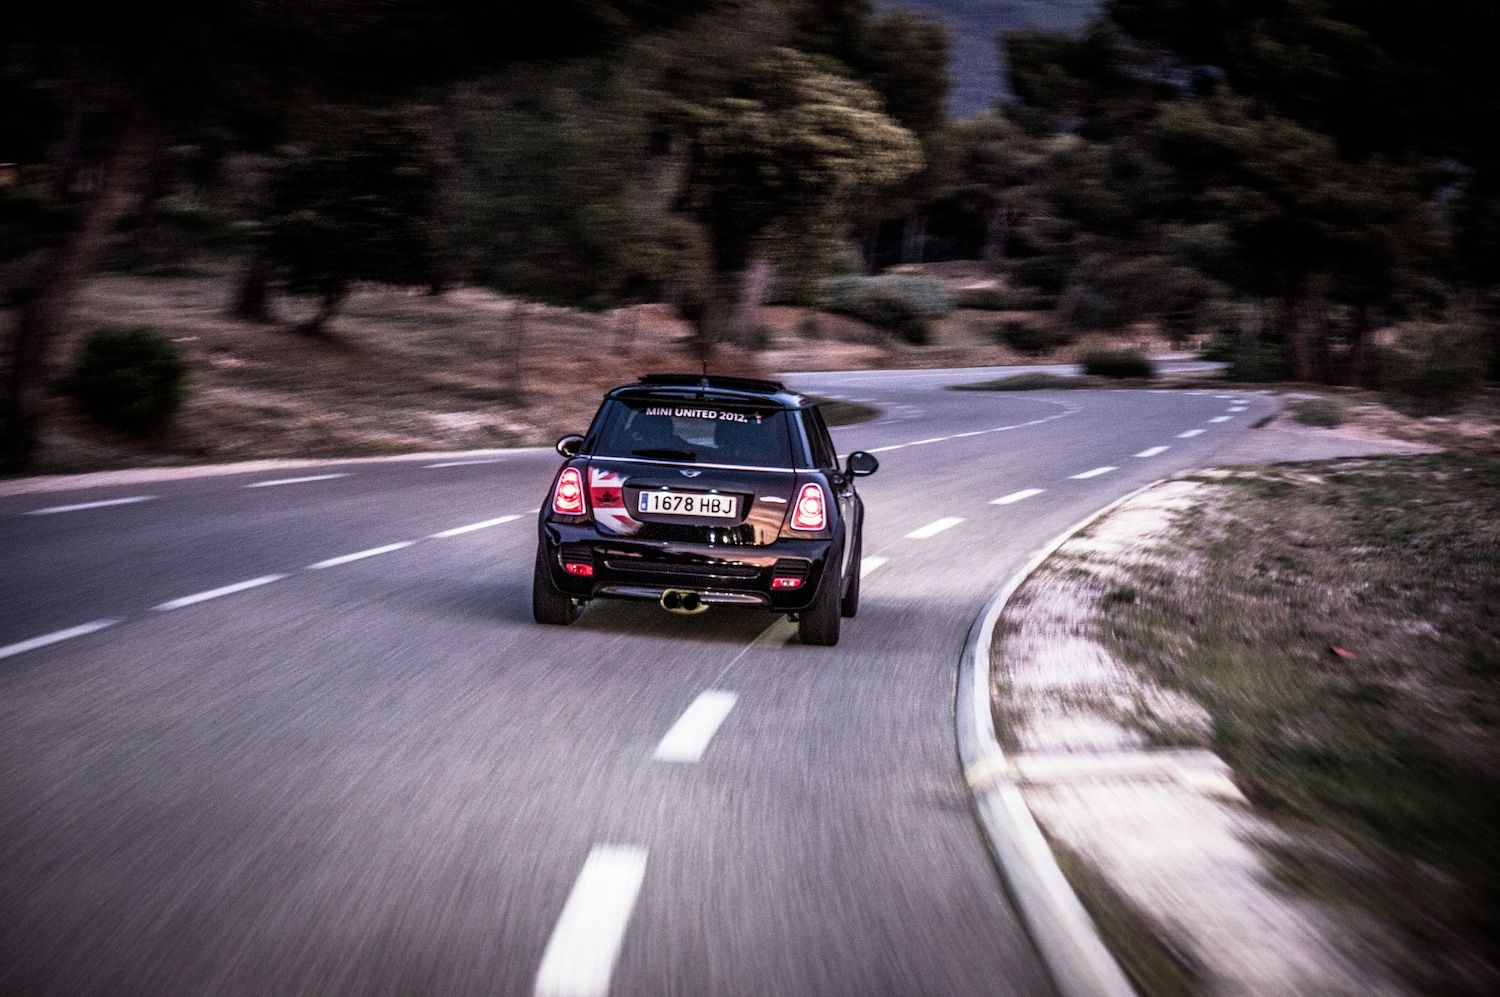 On the road to Le Castellet, France for MINI United 2012